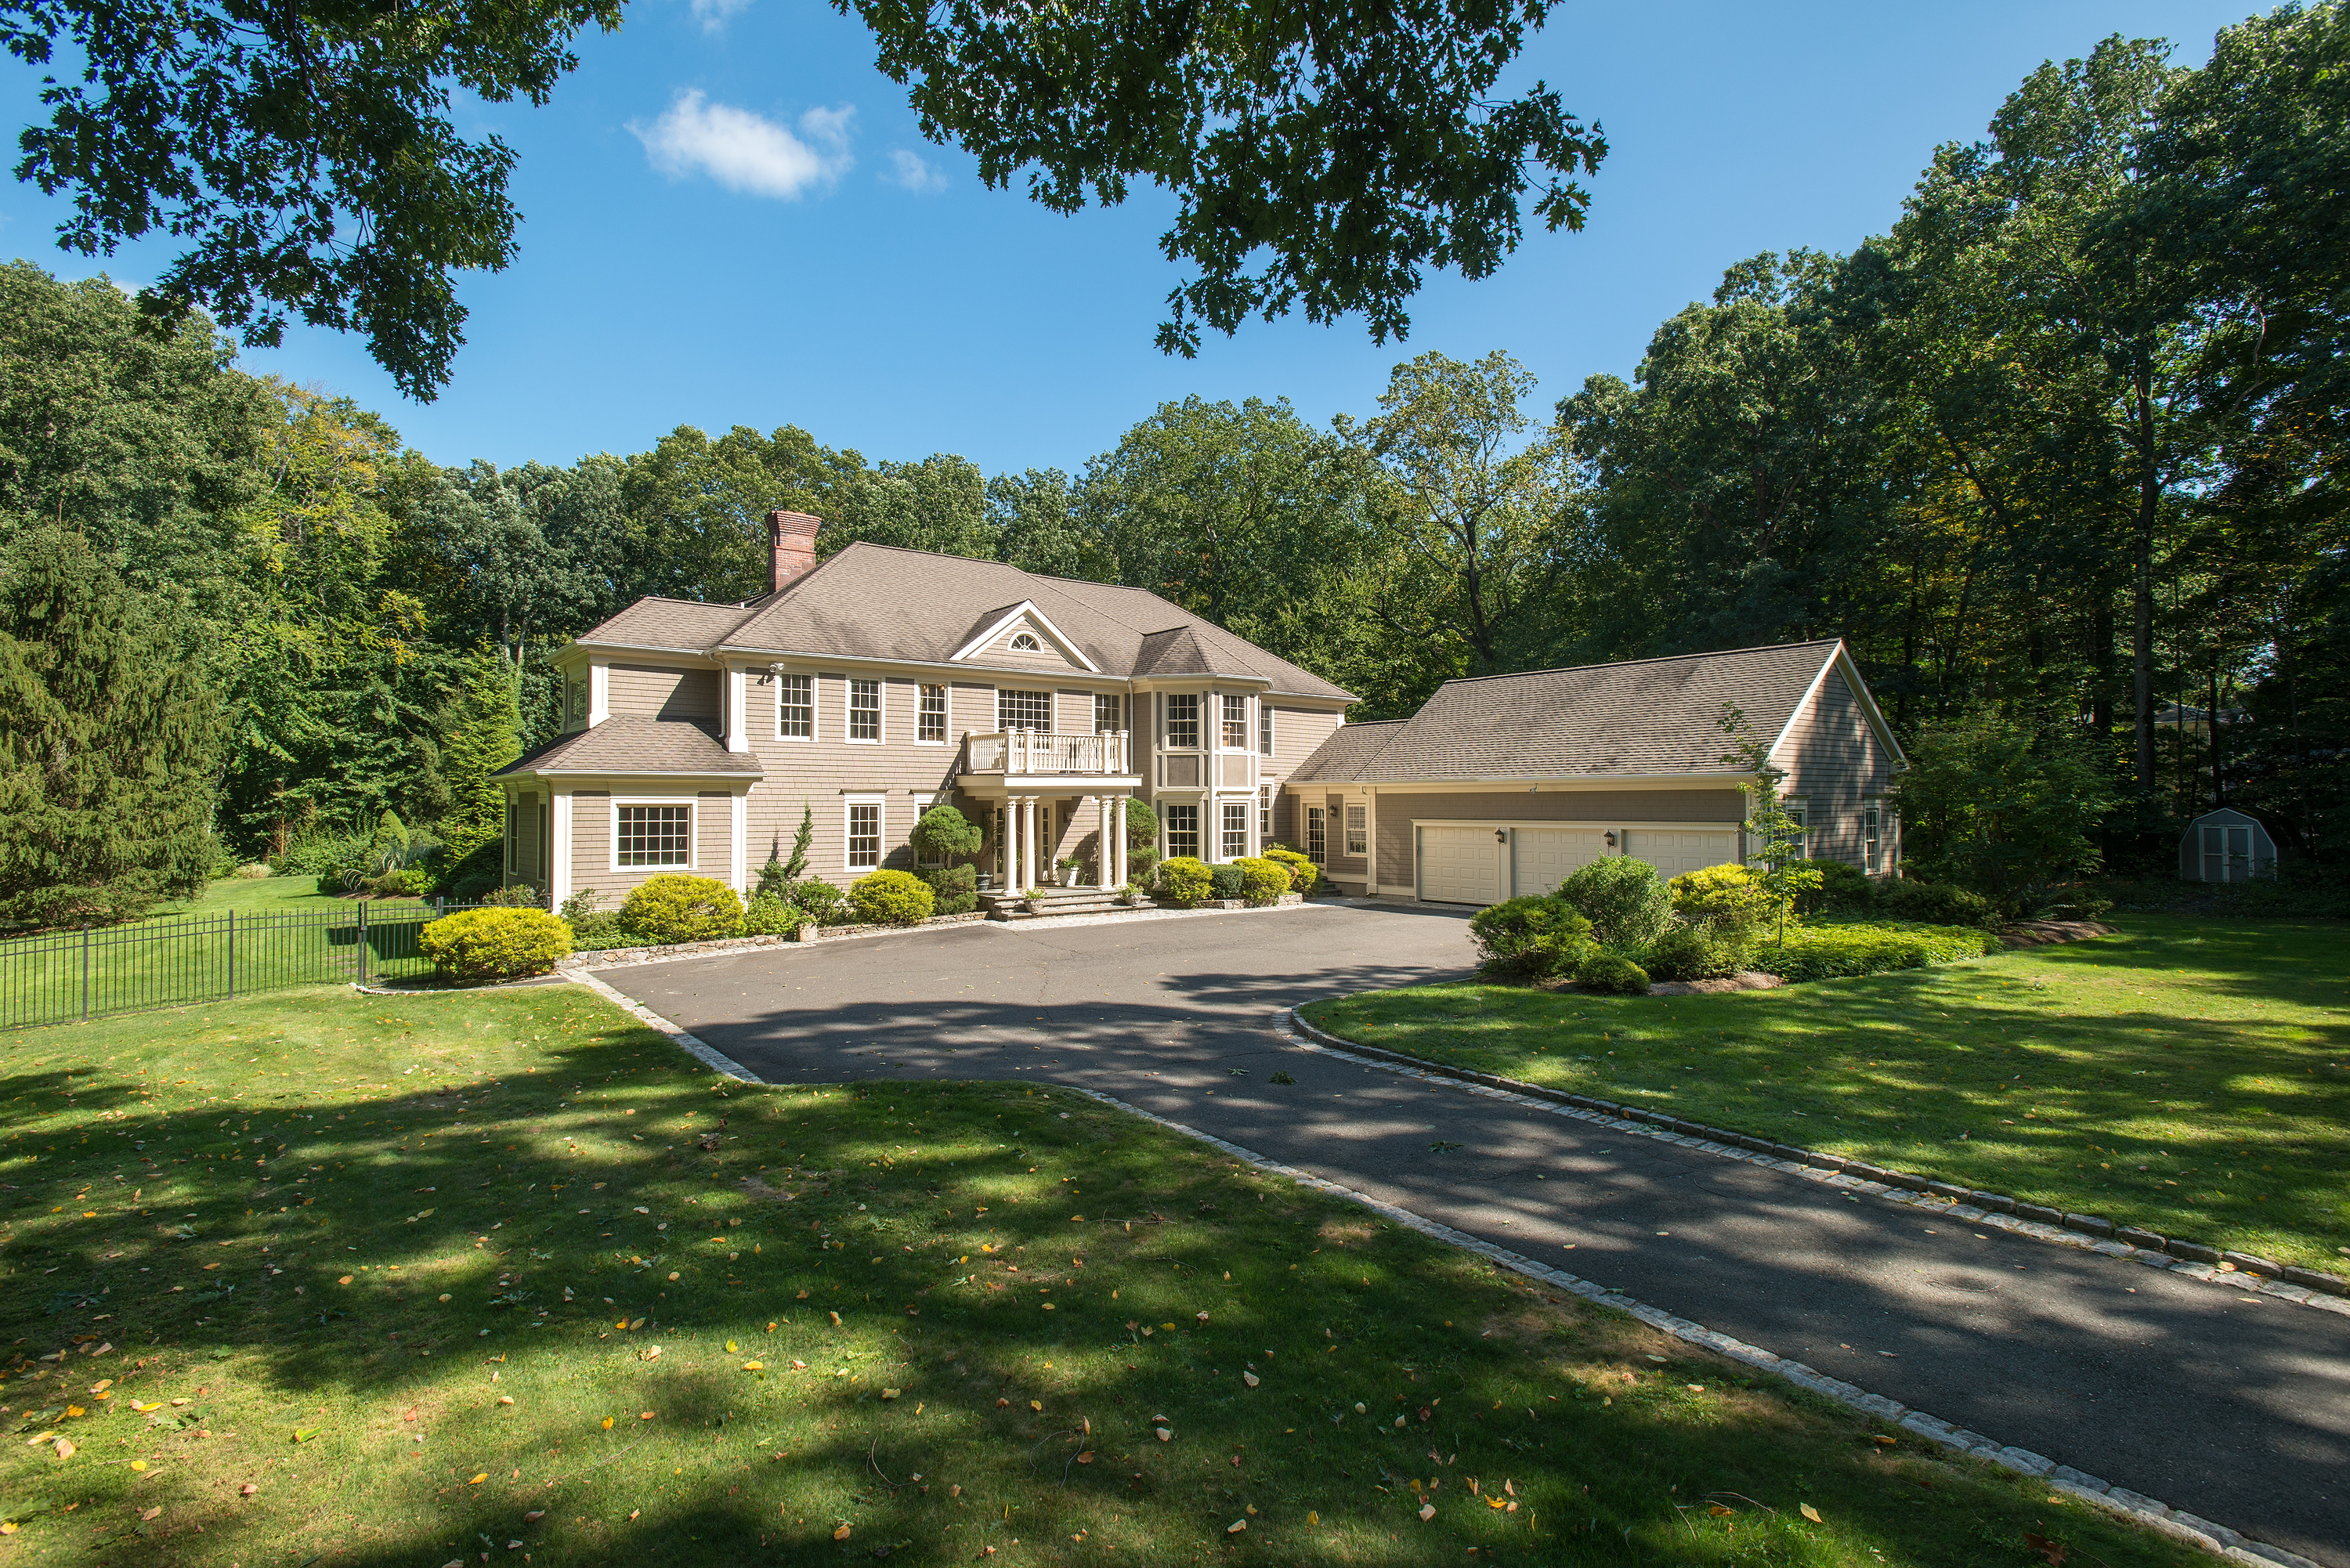 Property For Sale at Custom Colonial with Wonderful Outdoor Space